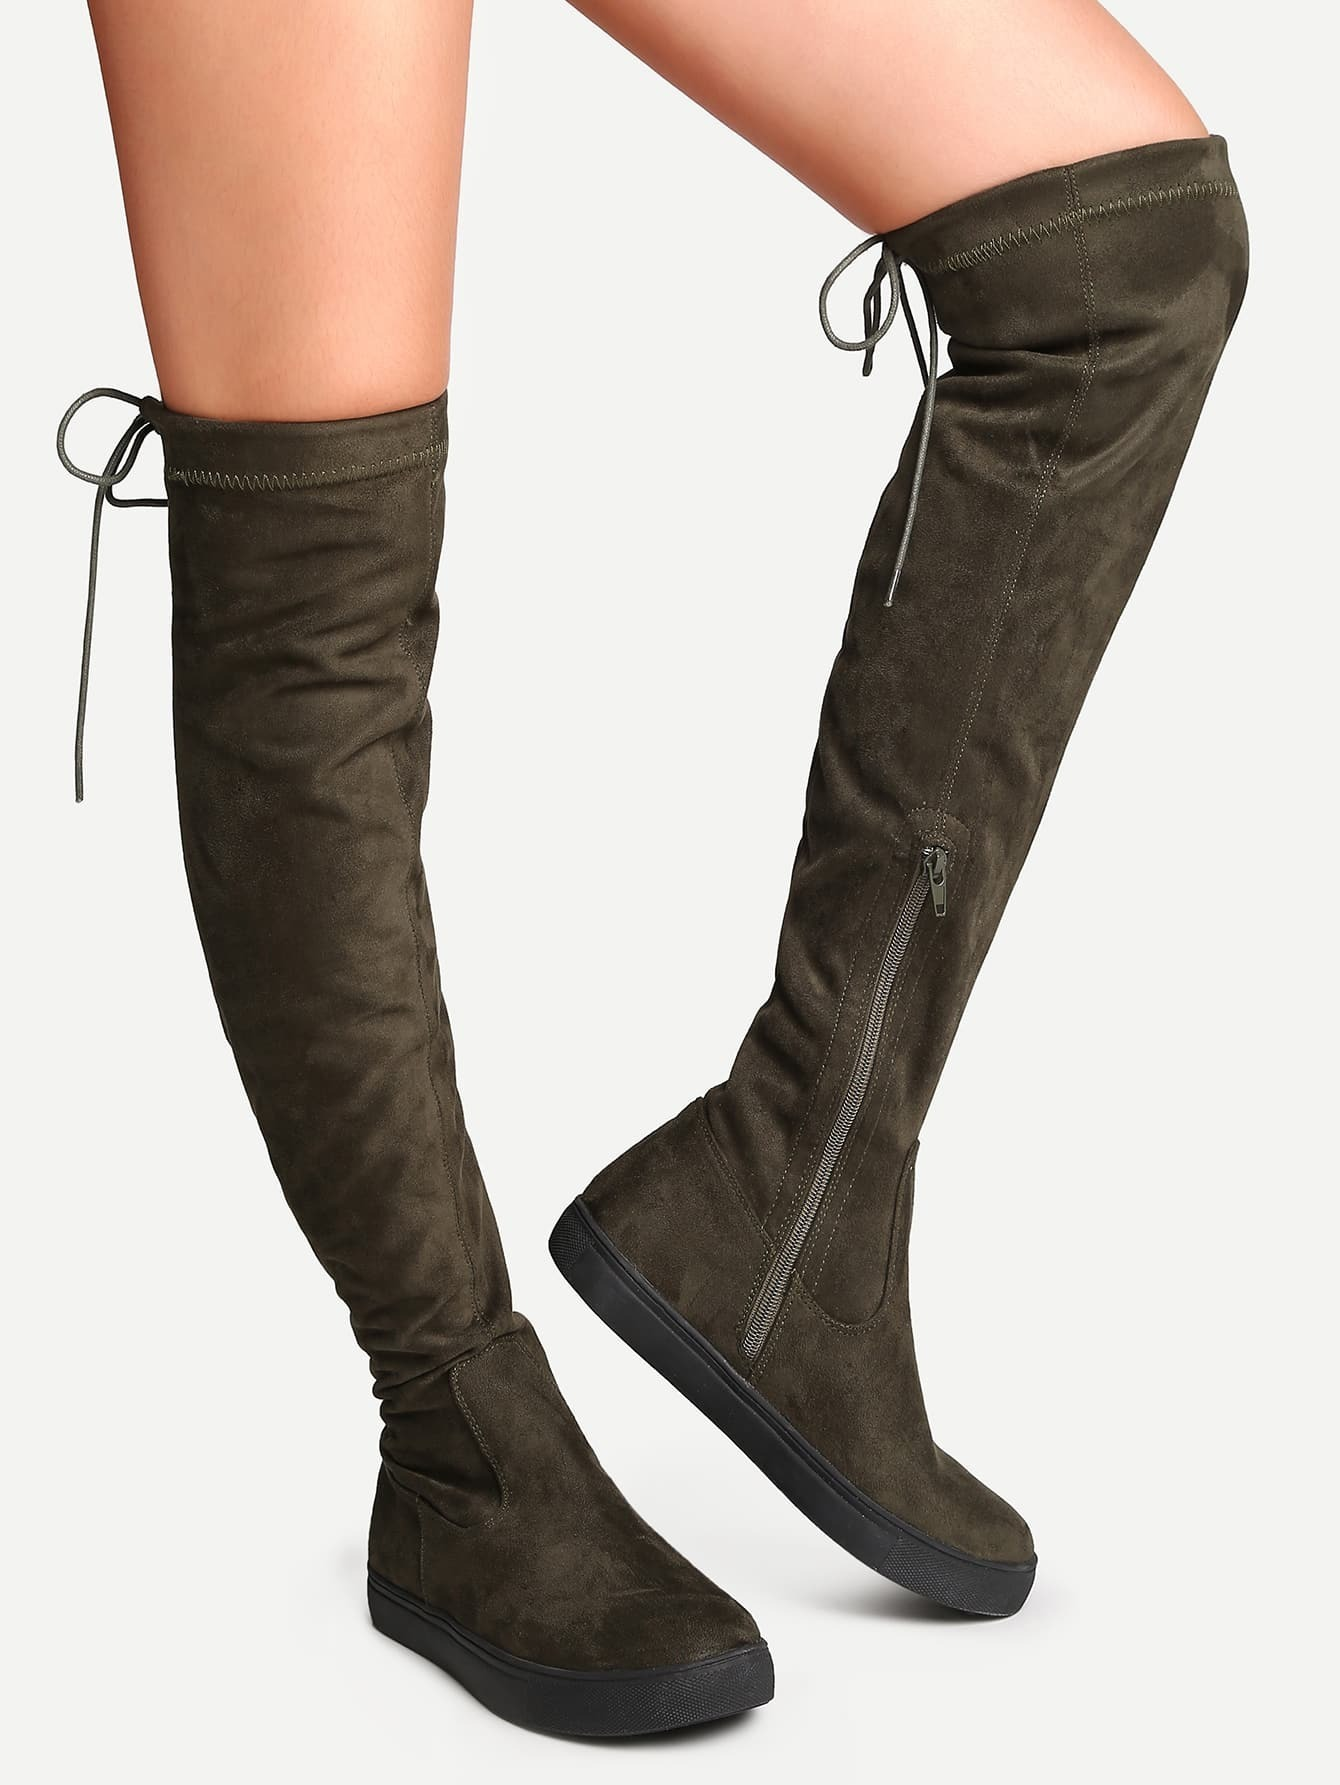 694789d278 Army Green Round Toe Tie Back Over The Knee Boots EmmaCloth-Women ...